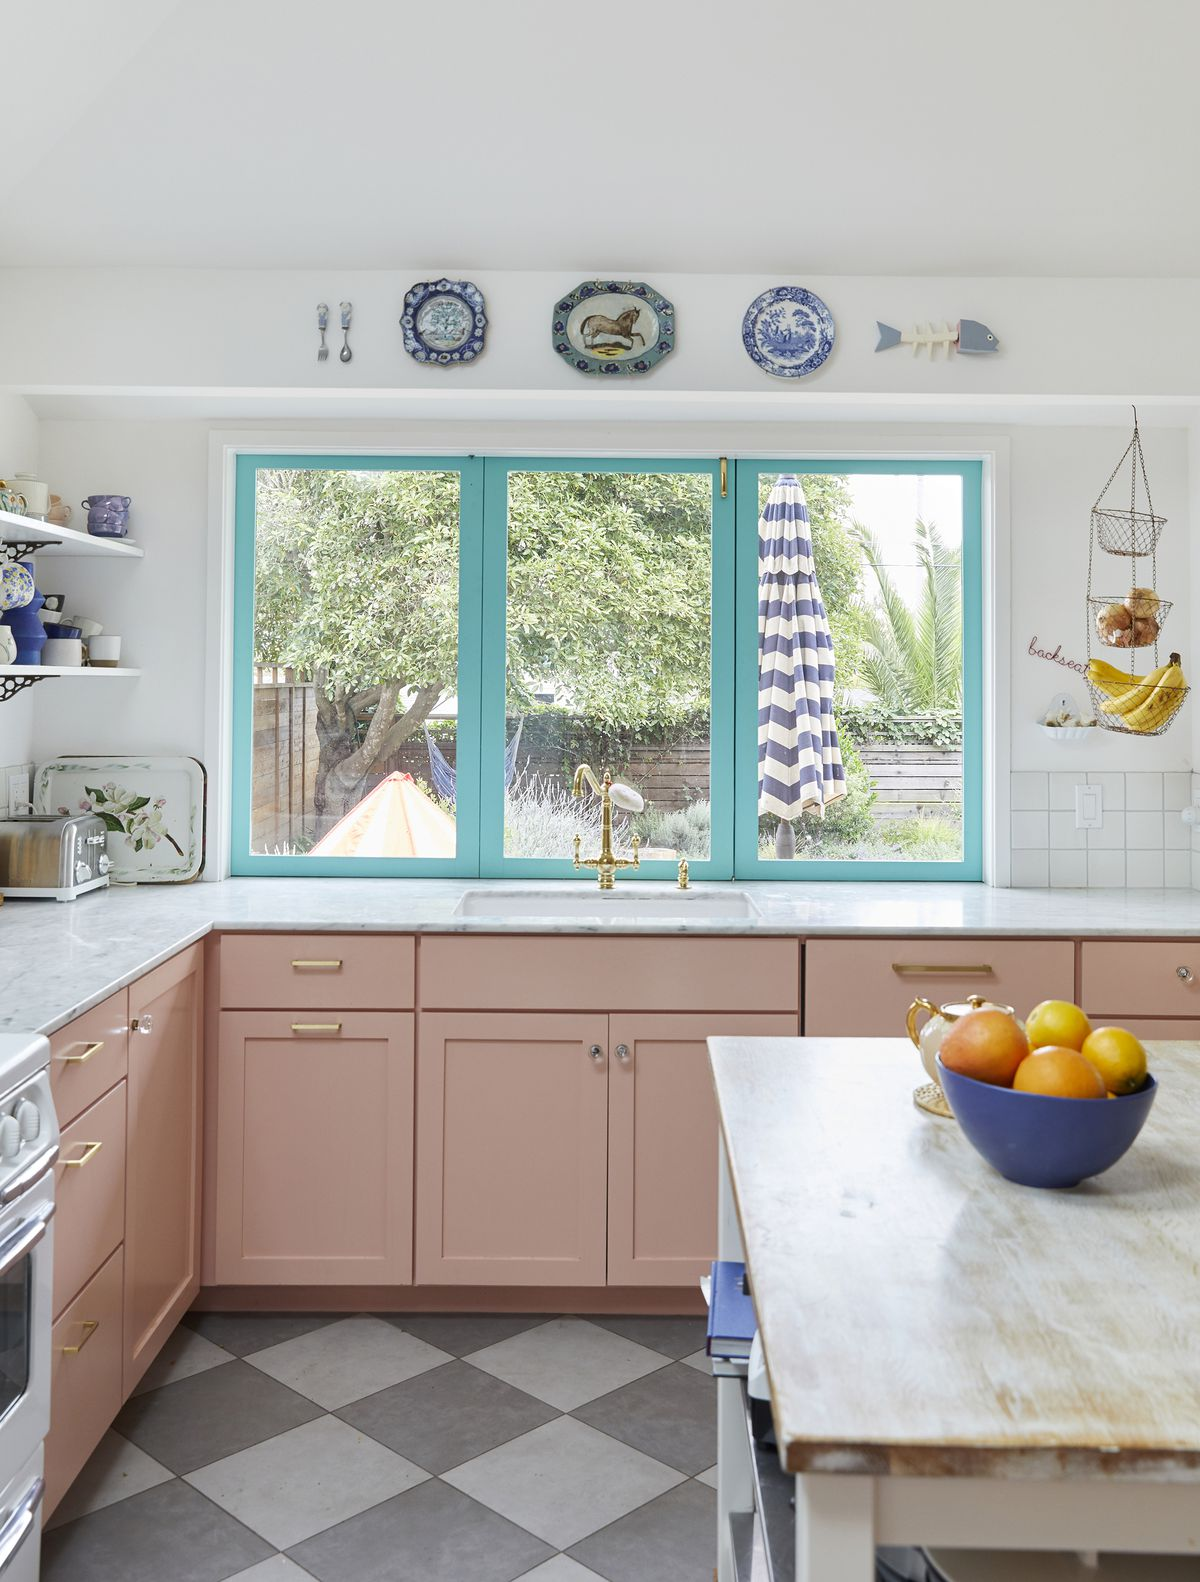 A kitchen with a triple paned window. The kitchen cabinets are painted pink. There is artwork above the windows and a hanging fruit basket. The floor is tiled with black and white diamond patterned tiles.